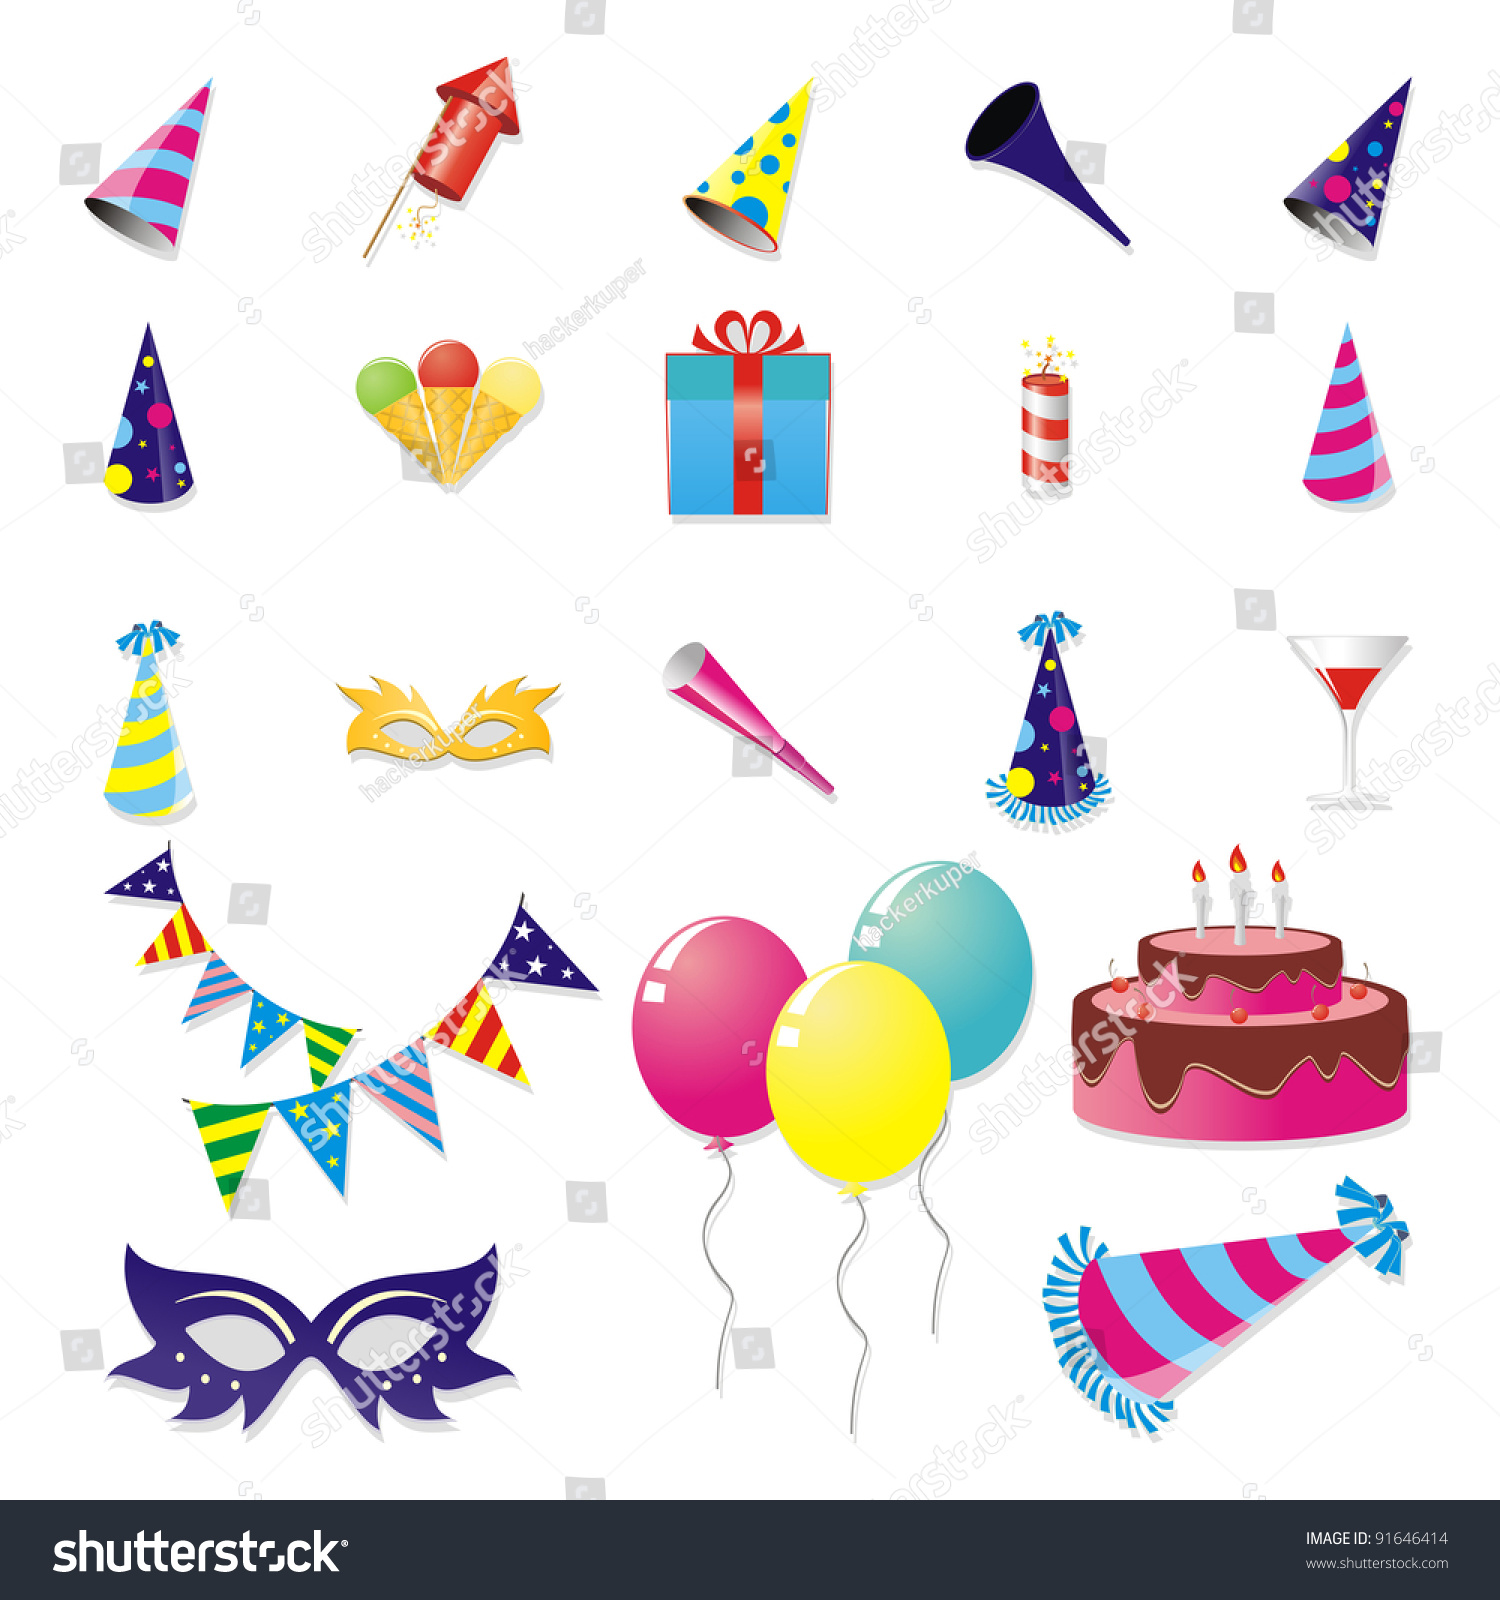 Party Stuff Set Stock Illustration 91646414